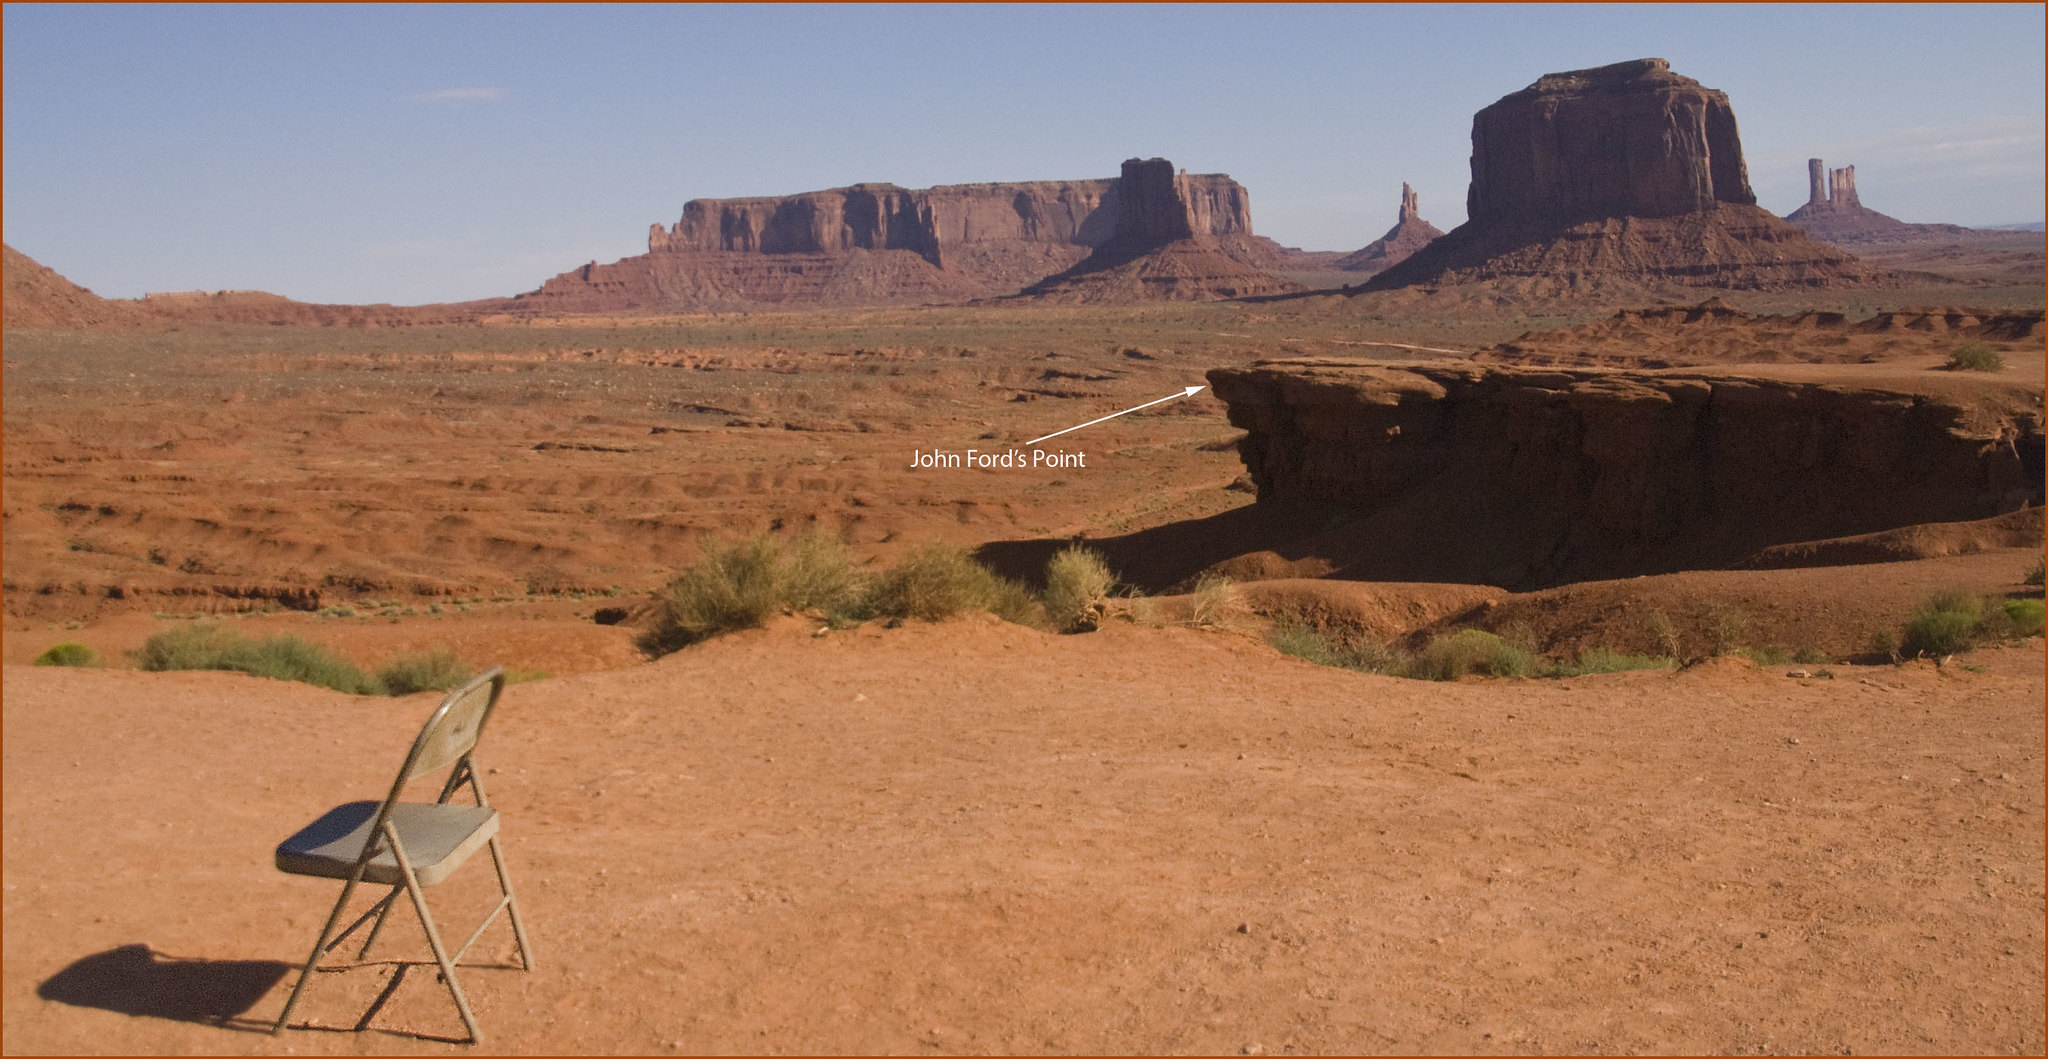 Chair at John Ford's Point -- Monument Valley (UT) August 2013 | by Ron Cogswell